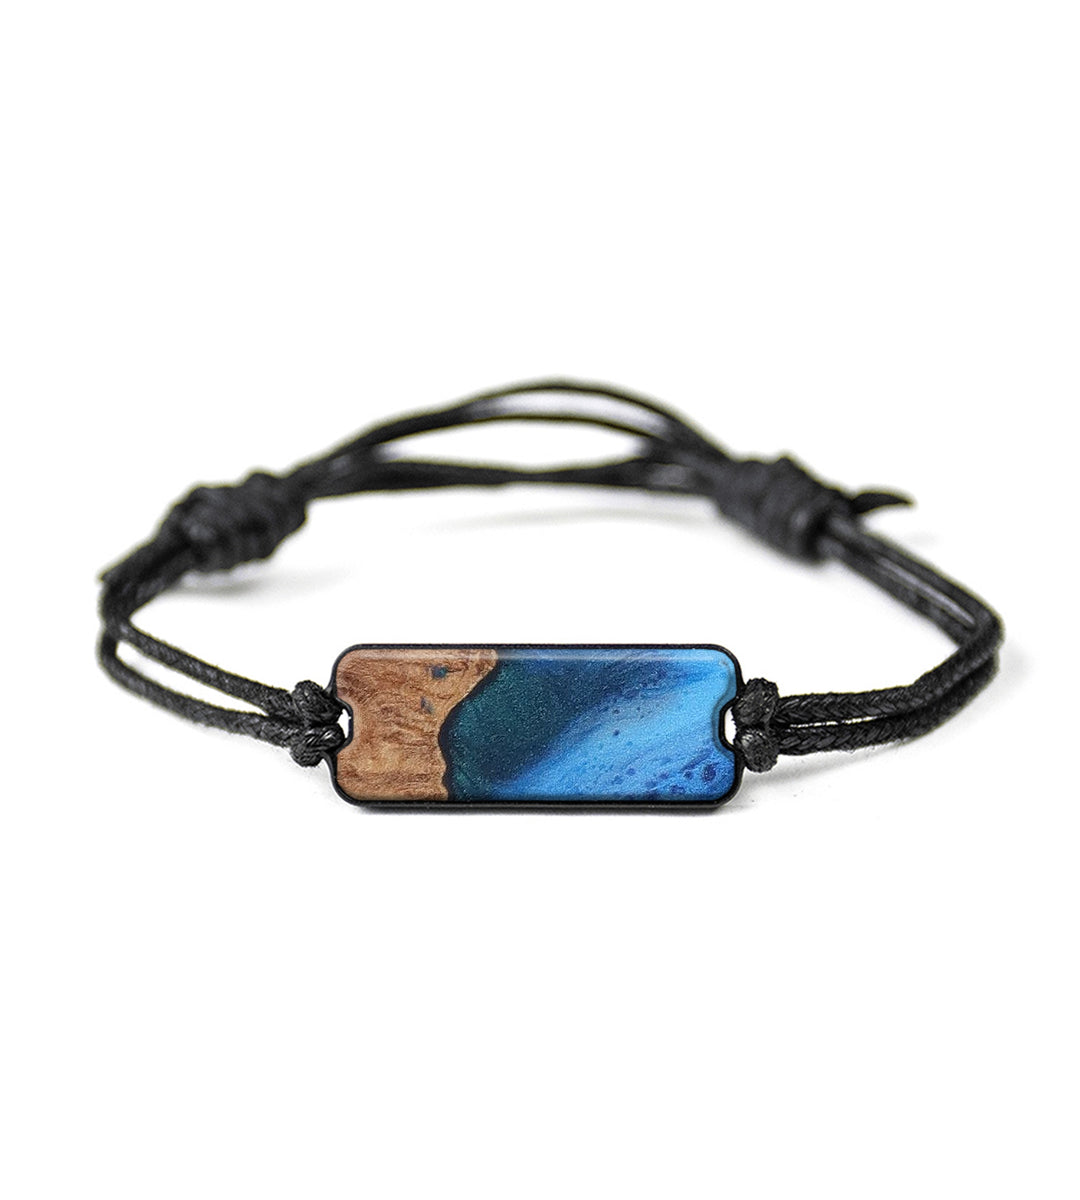 Classic Wood+Resin Bracelet - Moyna (Dark Blue, 423235)